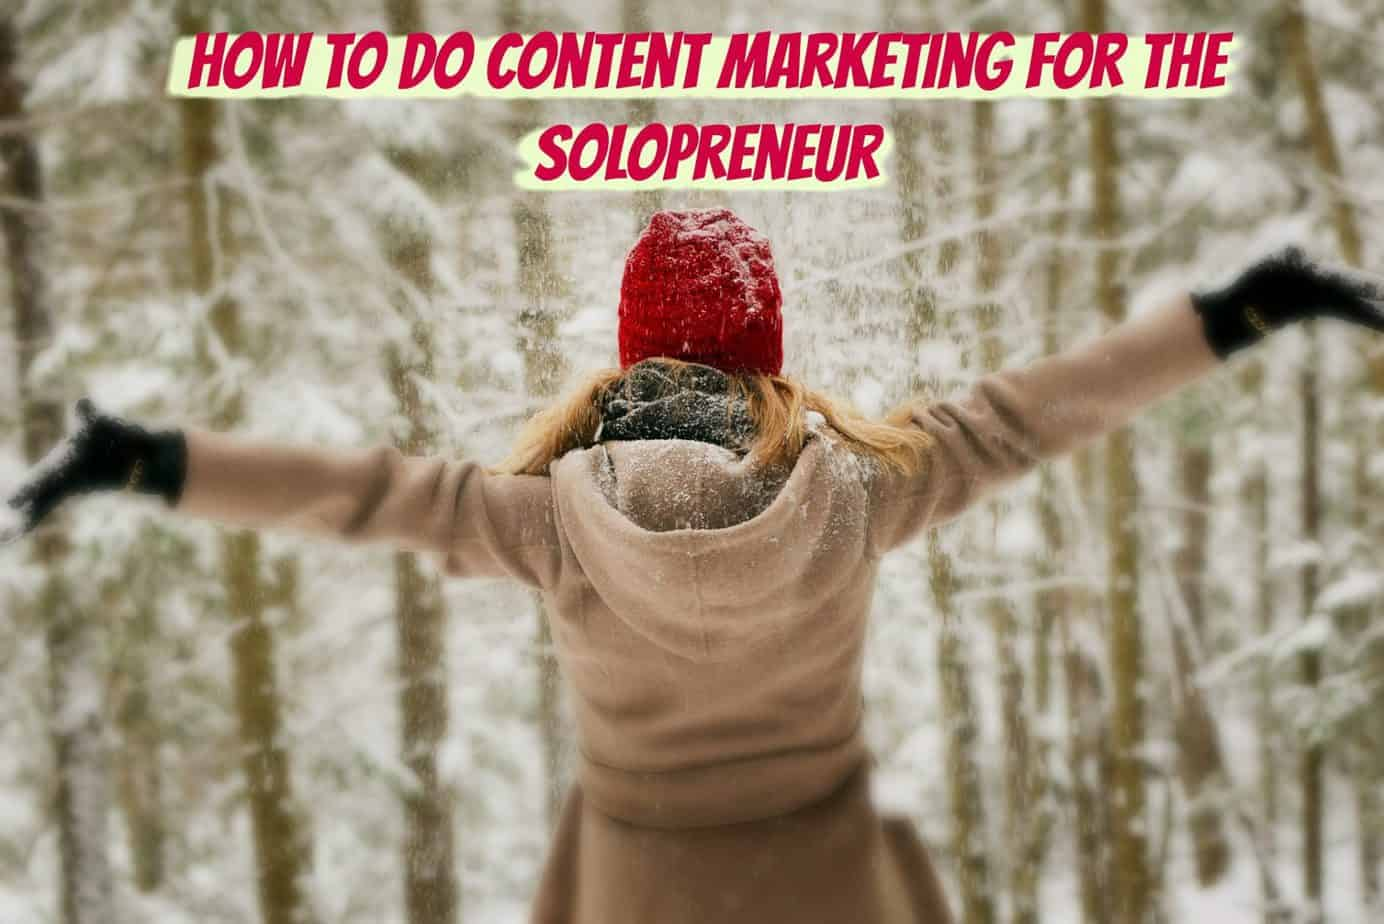 How to do content marketing for solopreneurs